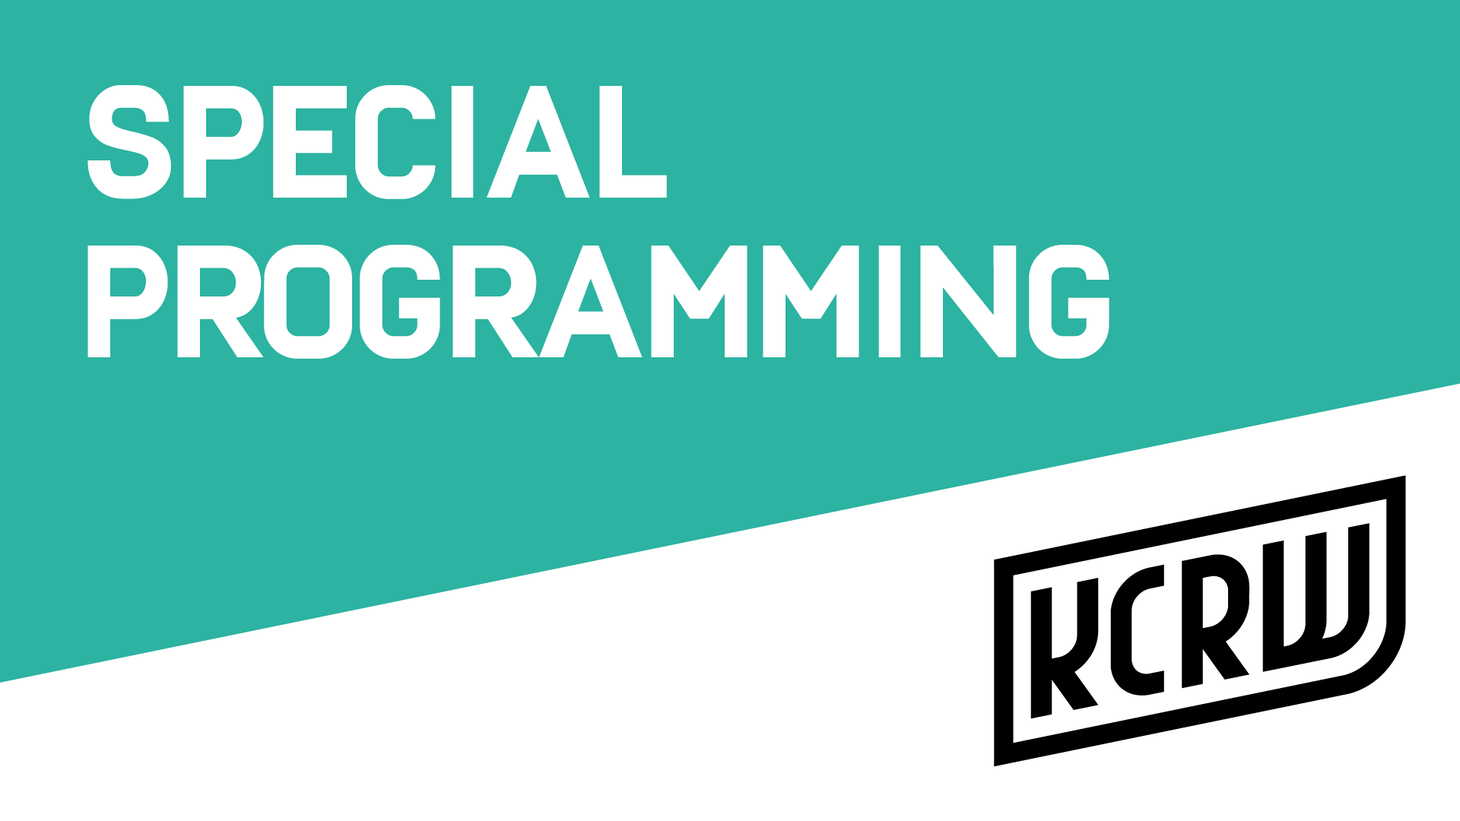 On Tuesday, February 13, Wednesday, February 14 and Thursday, February 14 (6-7am), KCRWworldnews.com will air full live coverage of the debate in the House of Representatives on a resolution objecting to President Bush's proposed troop build up in Iraq. (The debate may continue on Friday, February 16, as well.)  The House is expected to vote on the non-binding resolution expressing disapproval of the President's decision to deploy 20,000 additional US troops to Iraq. It's the first debate in the House on the war since Democrats won control of Congress in November. In an unusual move, every member of Congress will be allotted five minutes to speak.